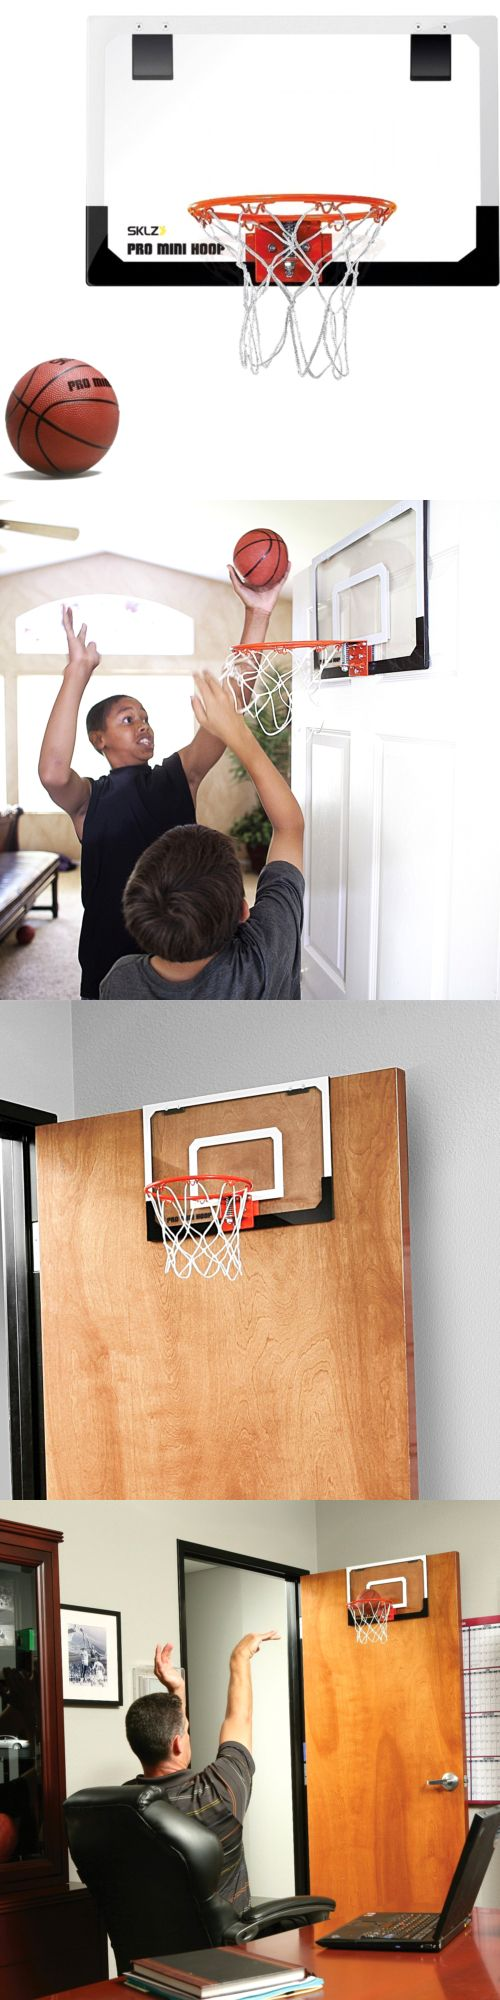 Backboard Systems 21196: Mini Pro Basketball Indoor Hoop Wall Door Kids Mount Sports With Ball Free New -> BUY IT NOW ONLY: $34.67 on eBay!